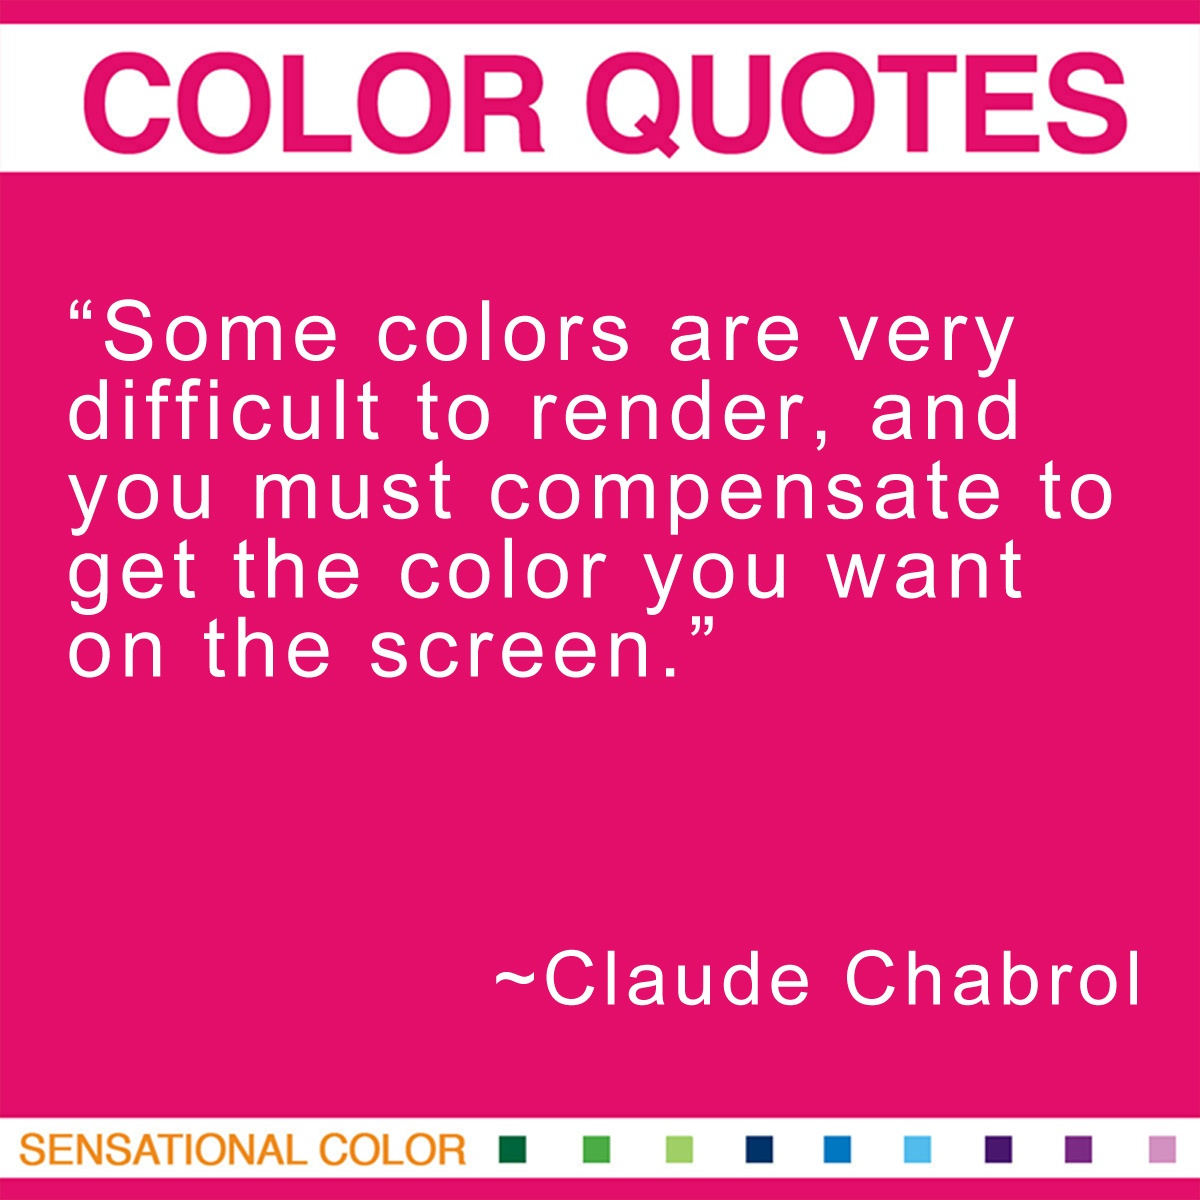 """Some colors are very difficult to render, and you must compensate to get the color you want on the screen."" - Claude Chabrol"